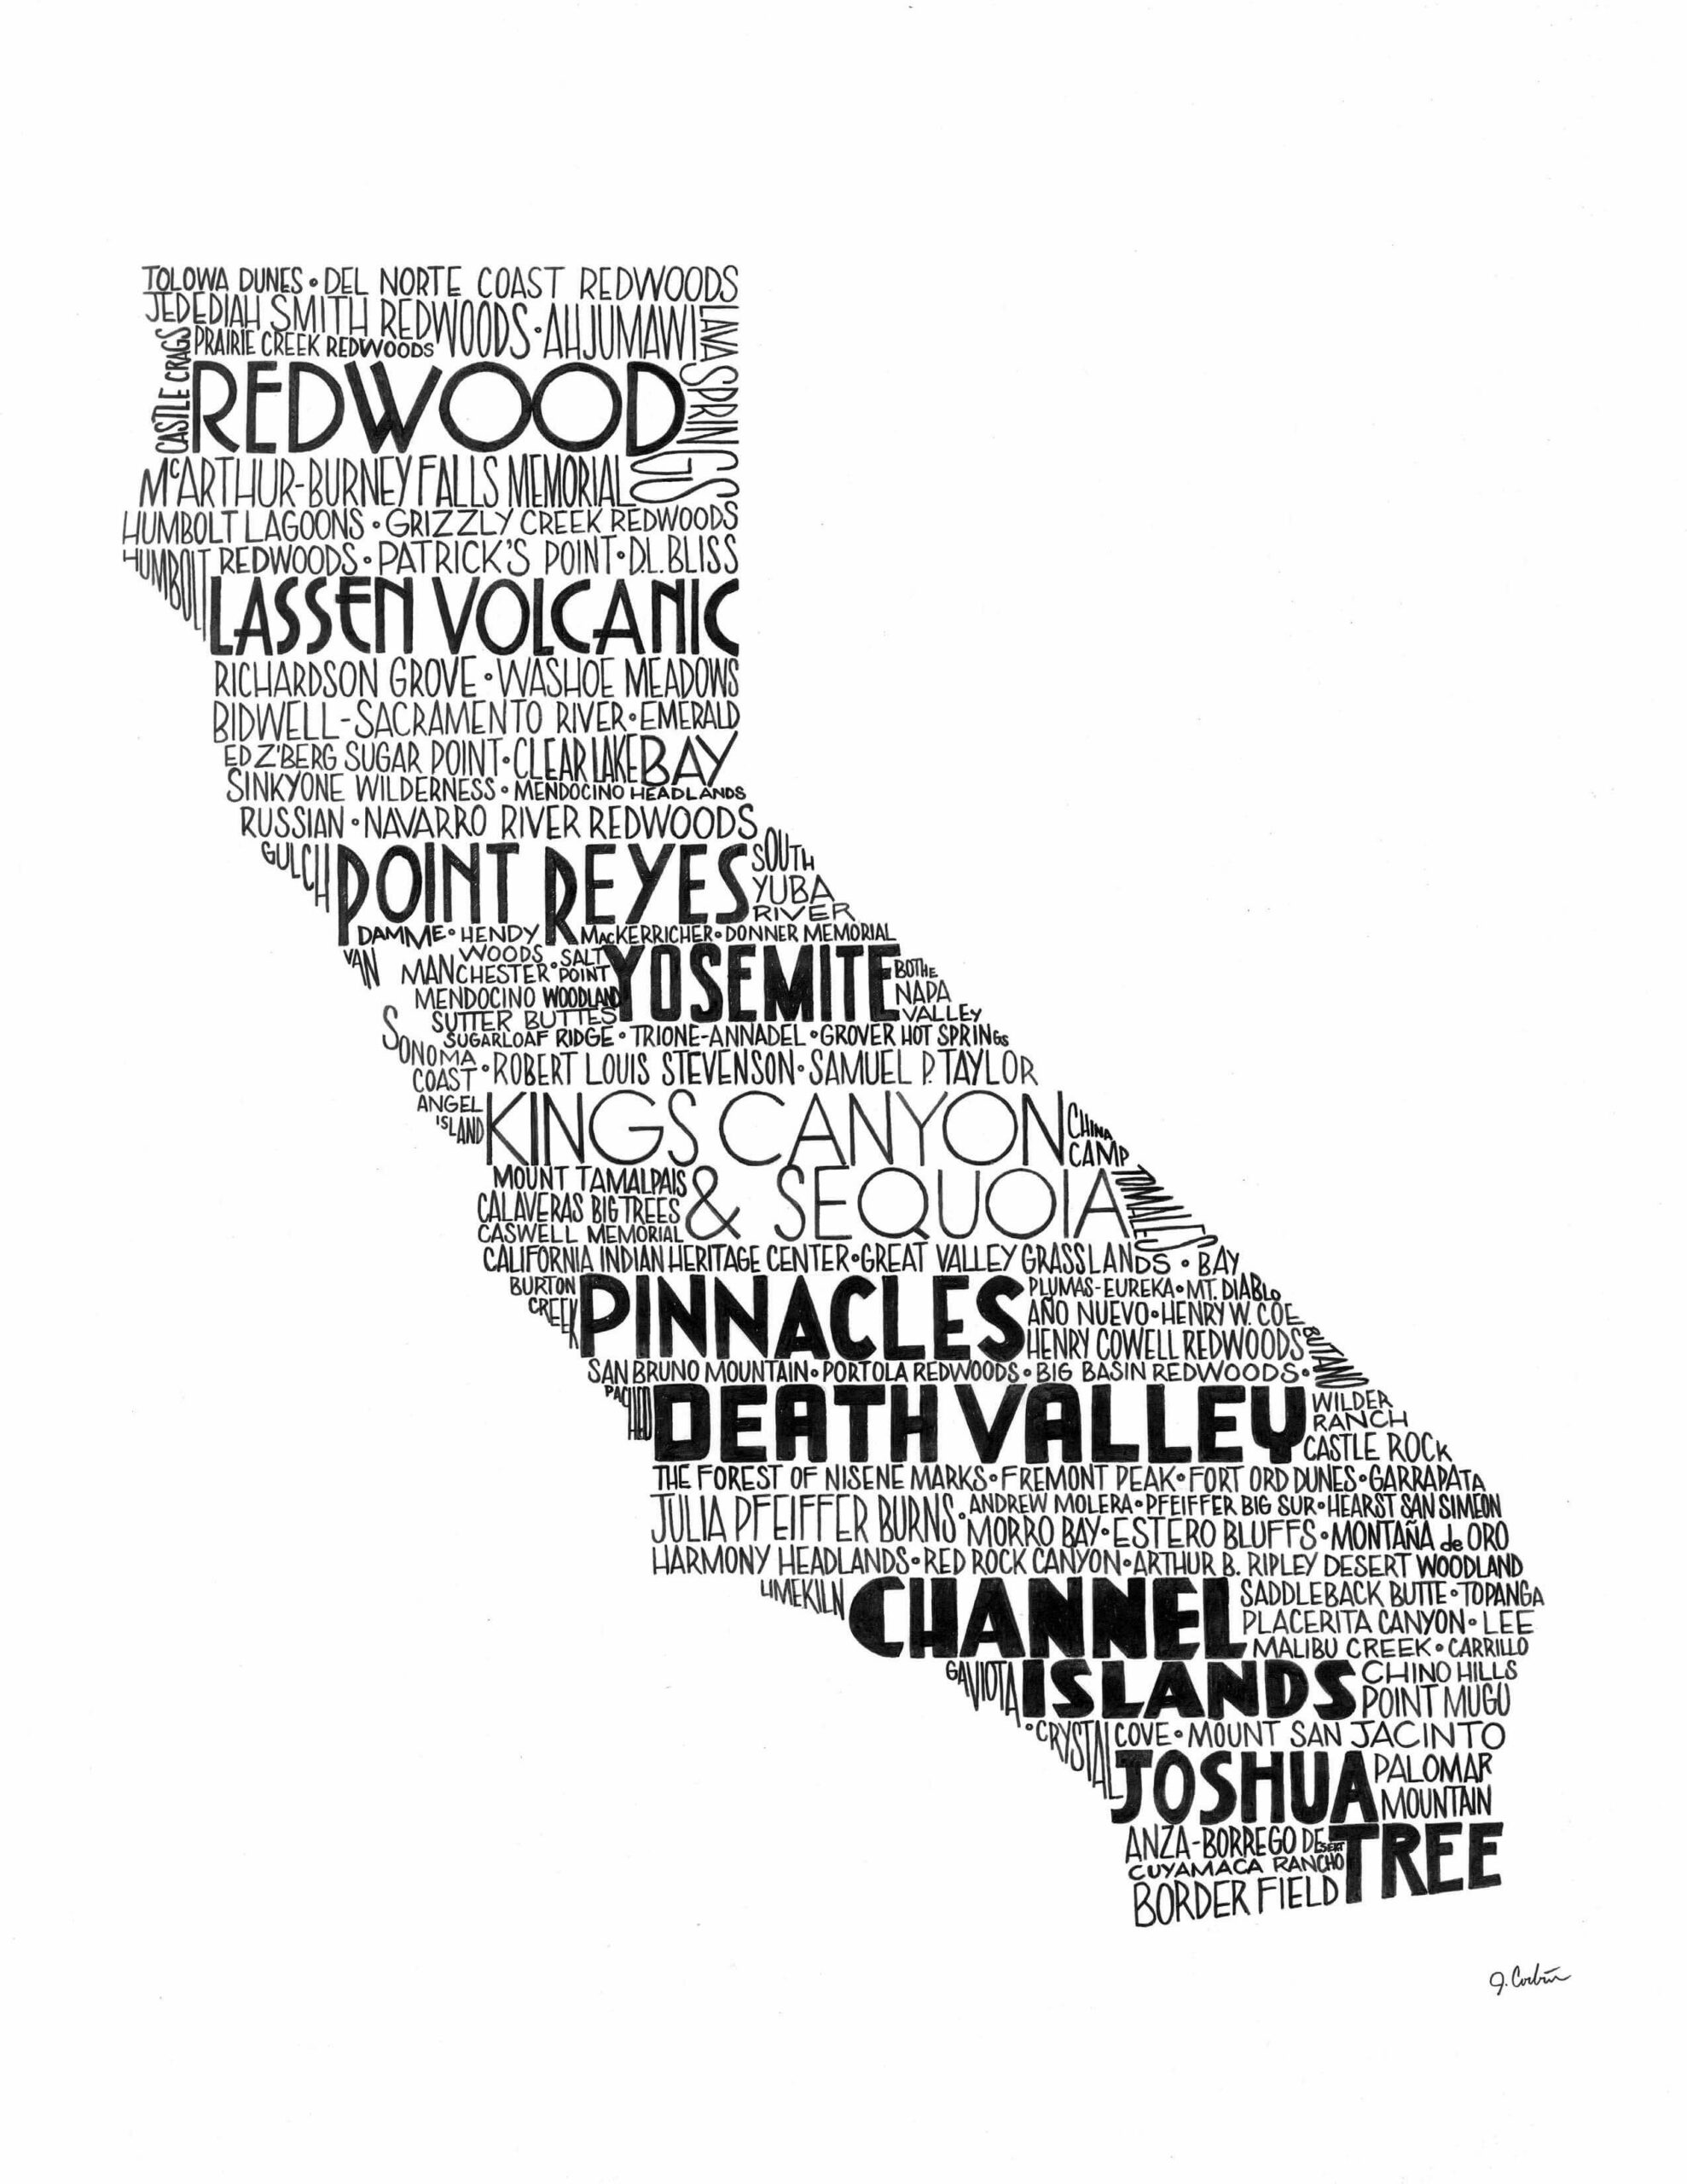 A black and white ink illustration word collage of California National and State Parks